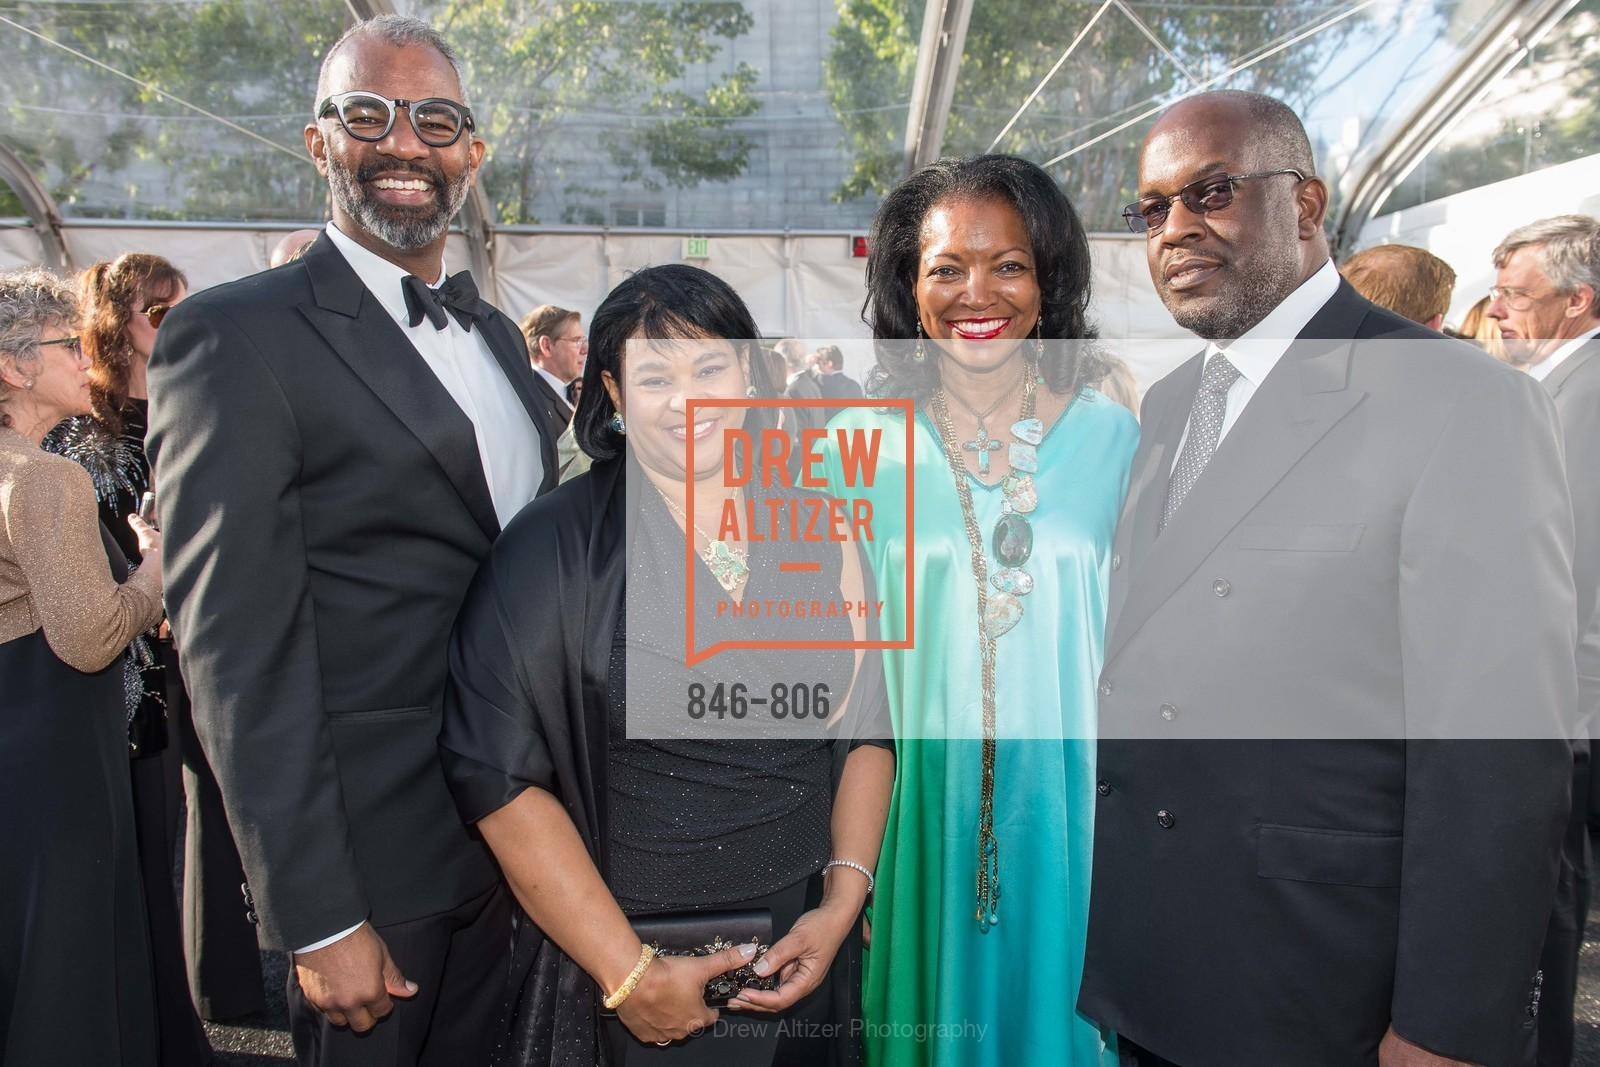 Dr. Tony Cole, Robyn Coles, Denise Bradley Tyson, Bernard Tyson, A.C.T. Gala Come Get Stranded, US, April 25th, 2015,Drew Altizer, Drew Altizer Photography, full-service agency, private events, San Francisco photographer, photographer california